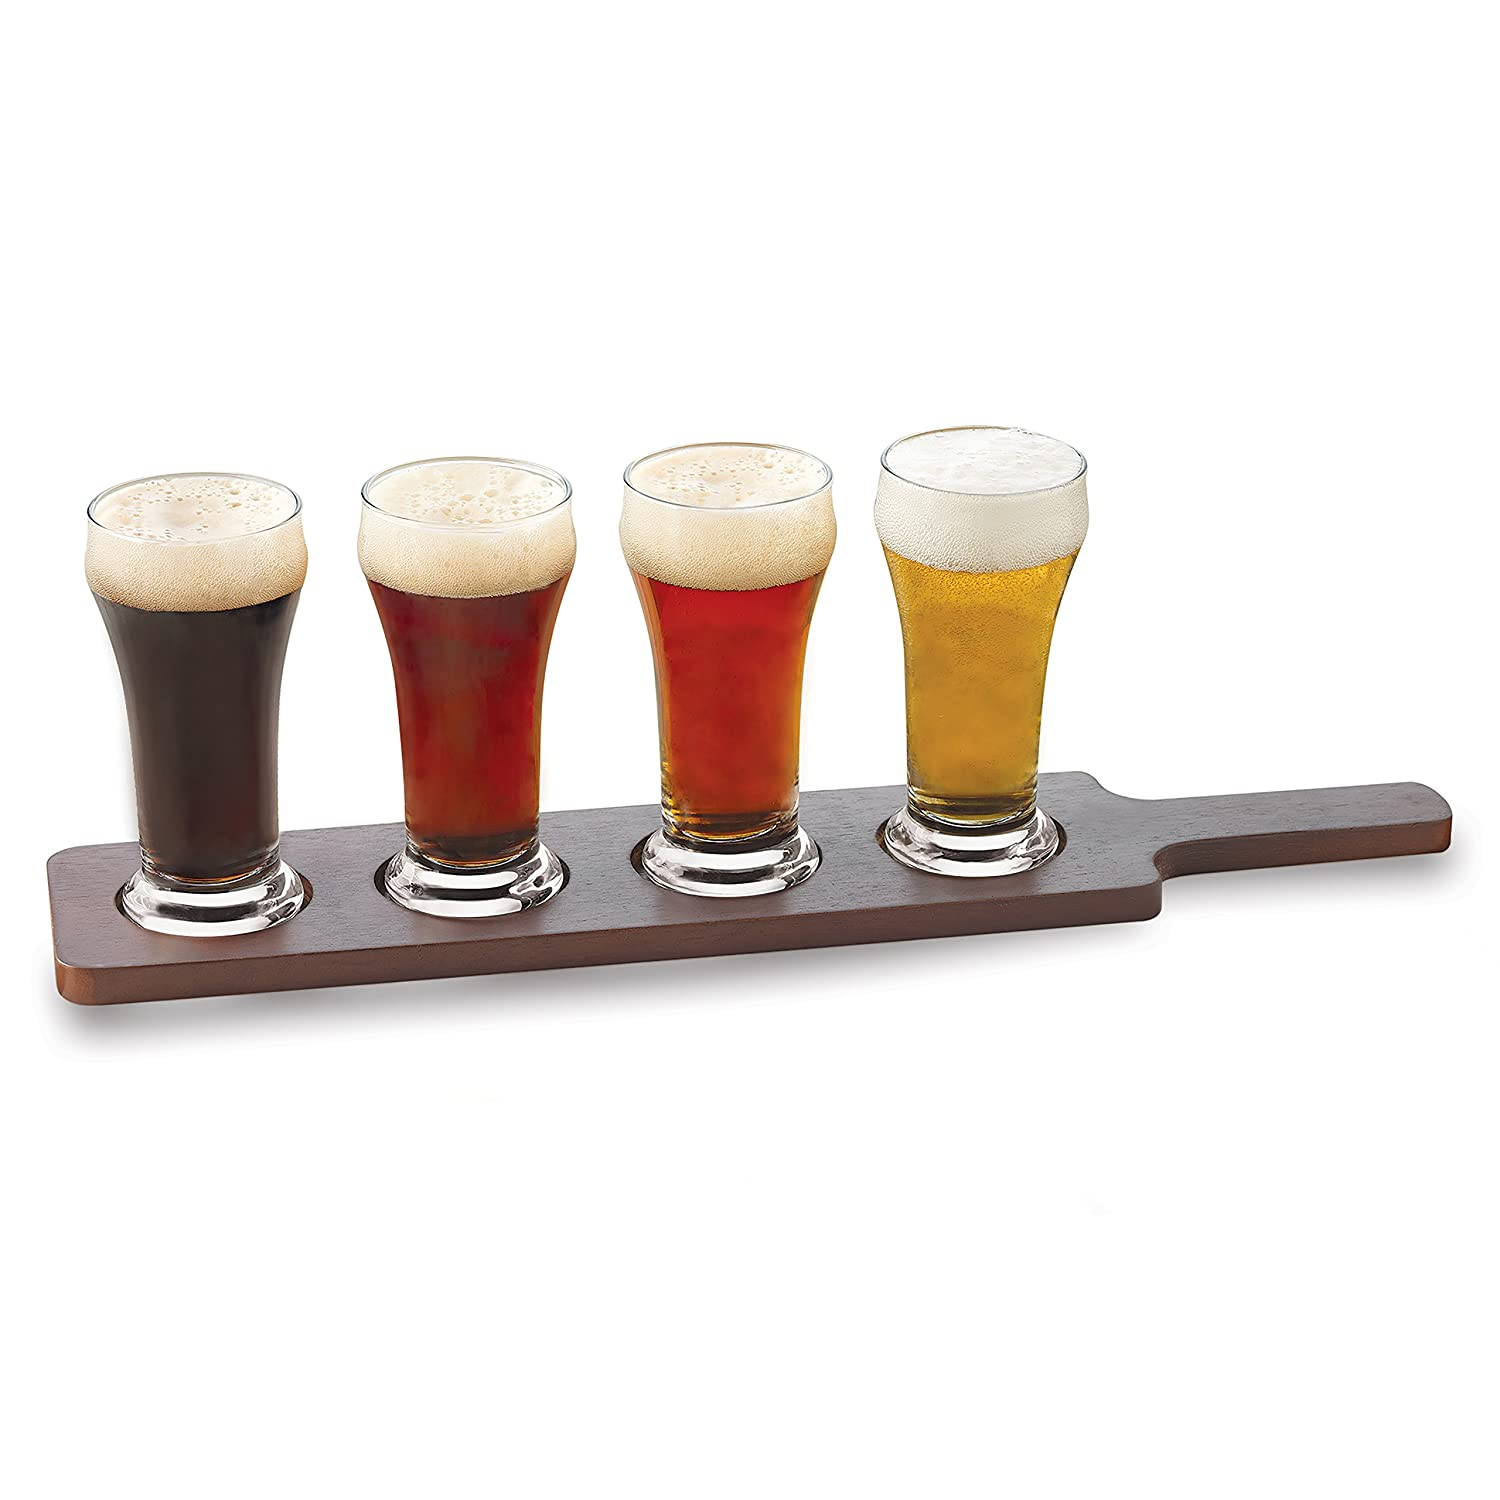 Libbey 5 Piece Craft Brews Beer Flight 6-Ounce Clear Pilsner Glass Set, 6 oz, Clear 16YS4